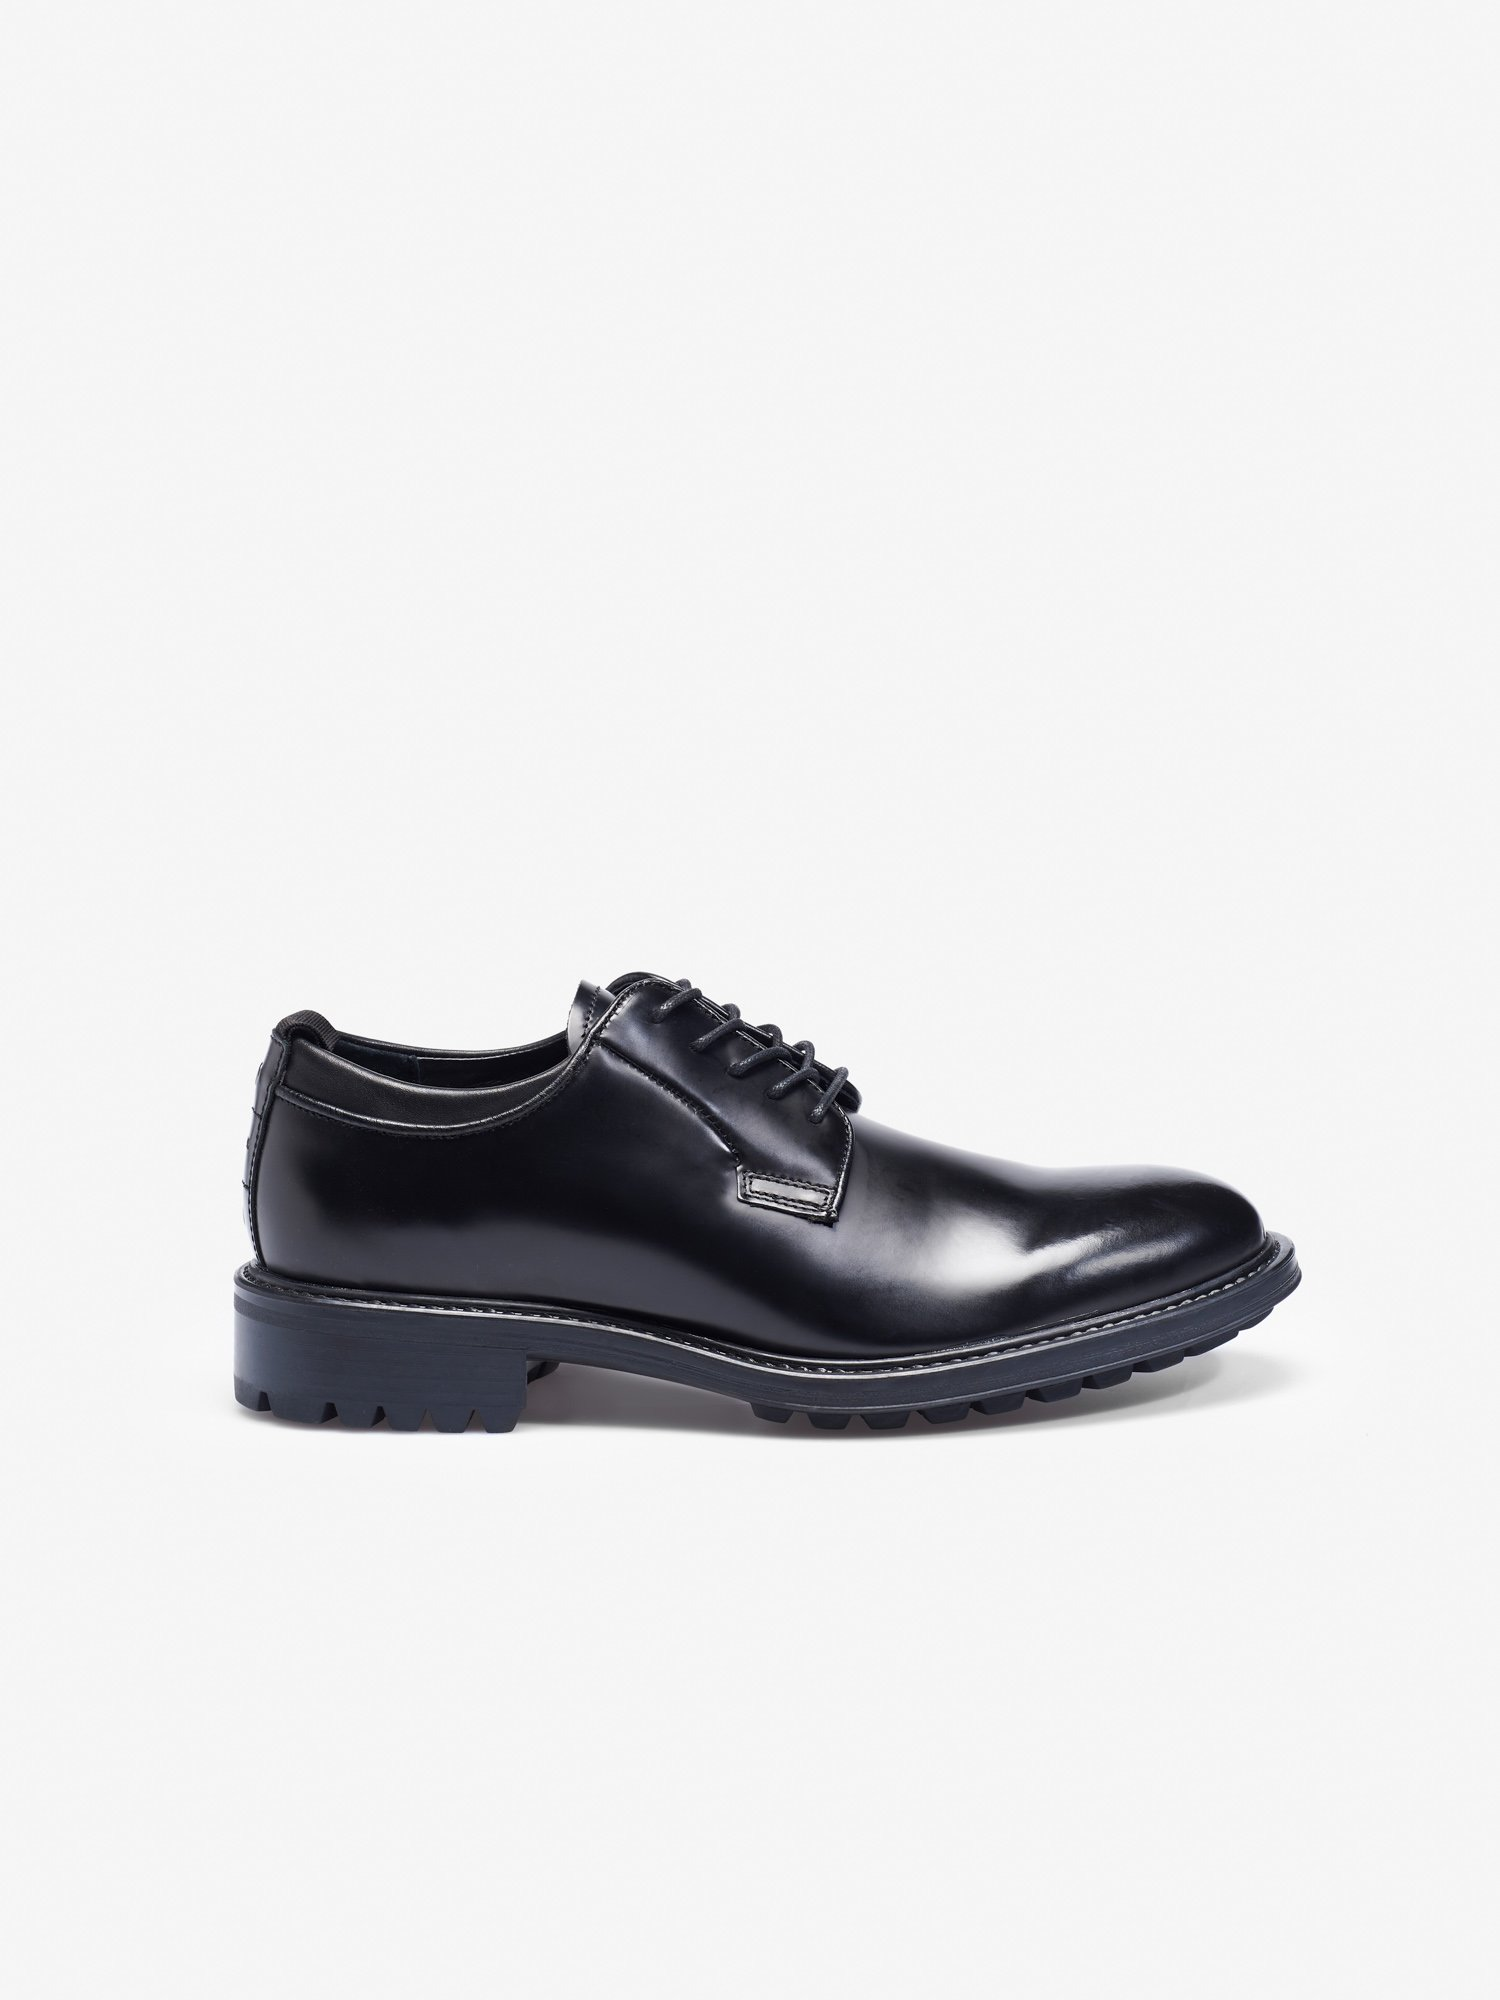 OXFORD-SCHUHE IN LACKLEDER - Blauer